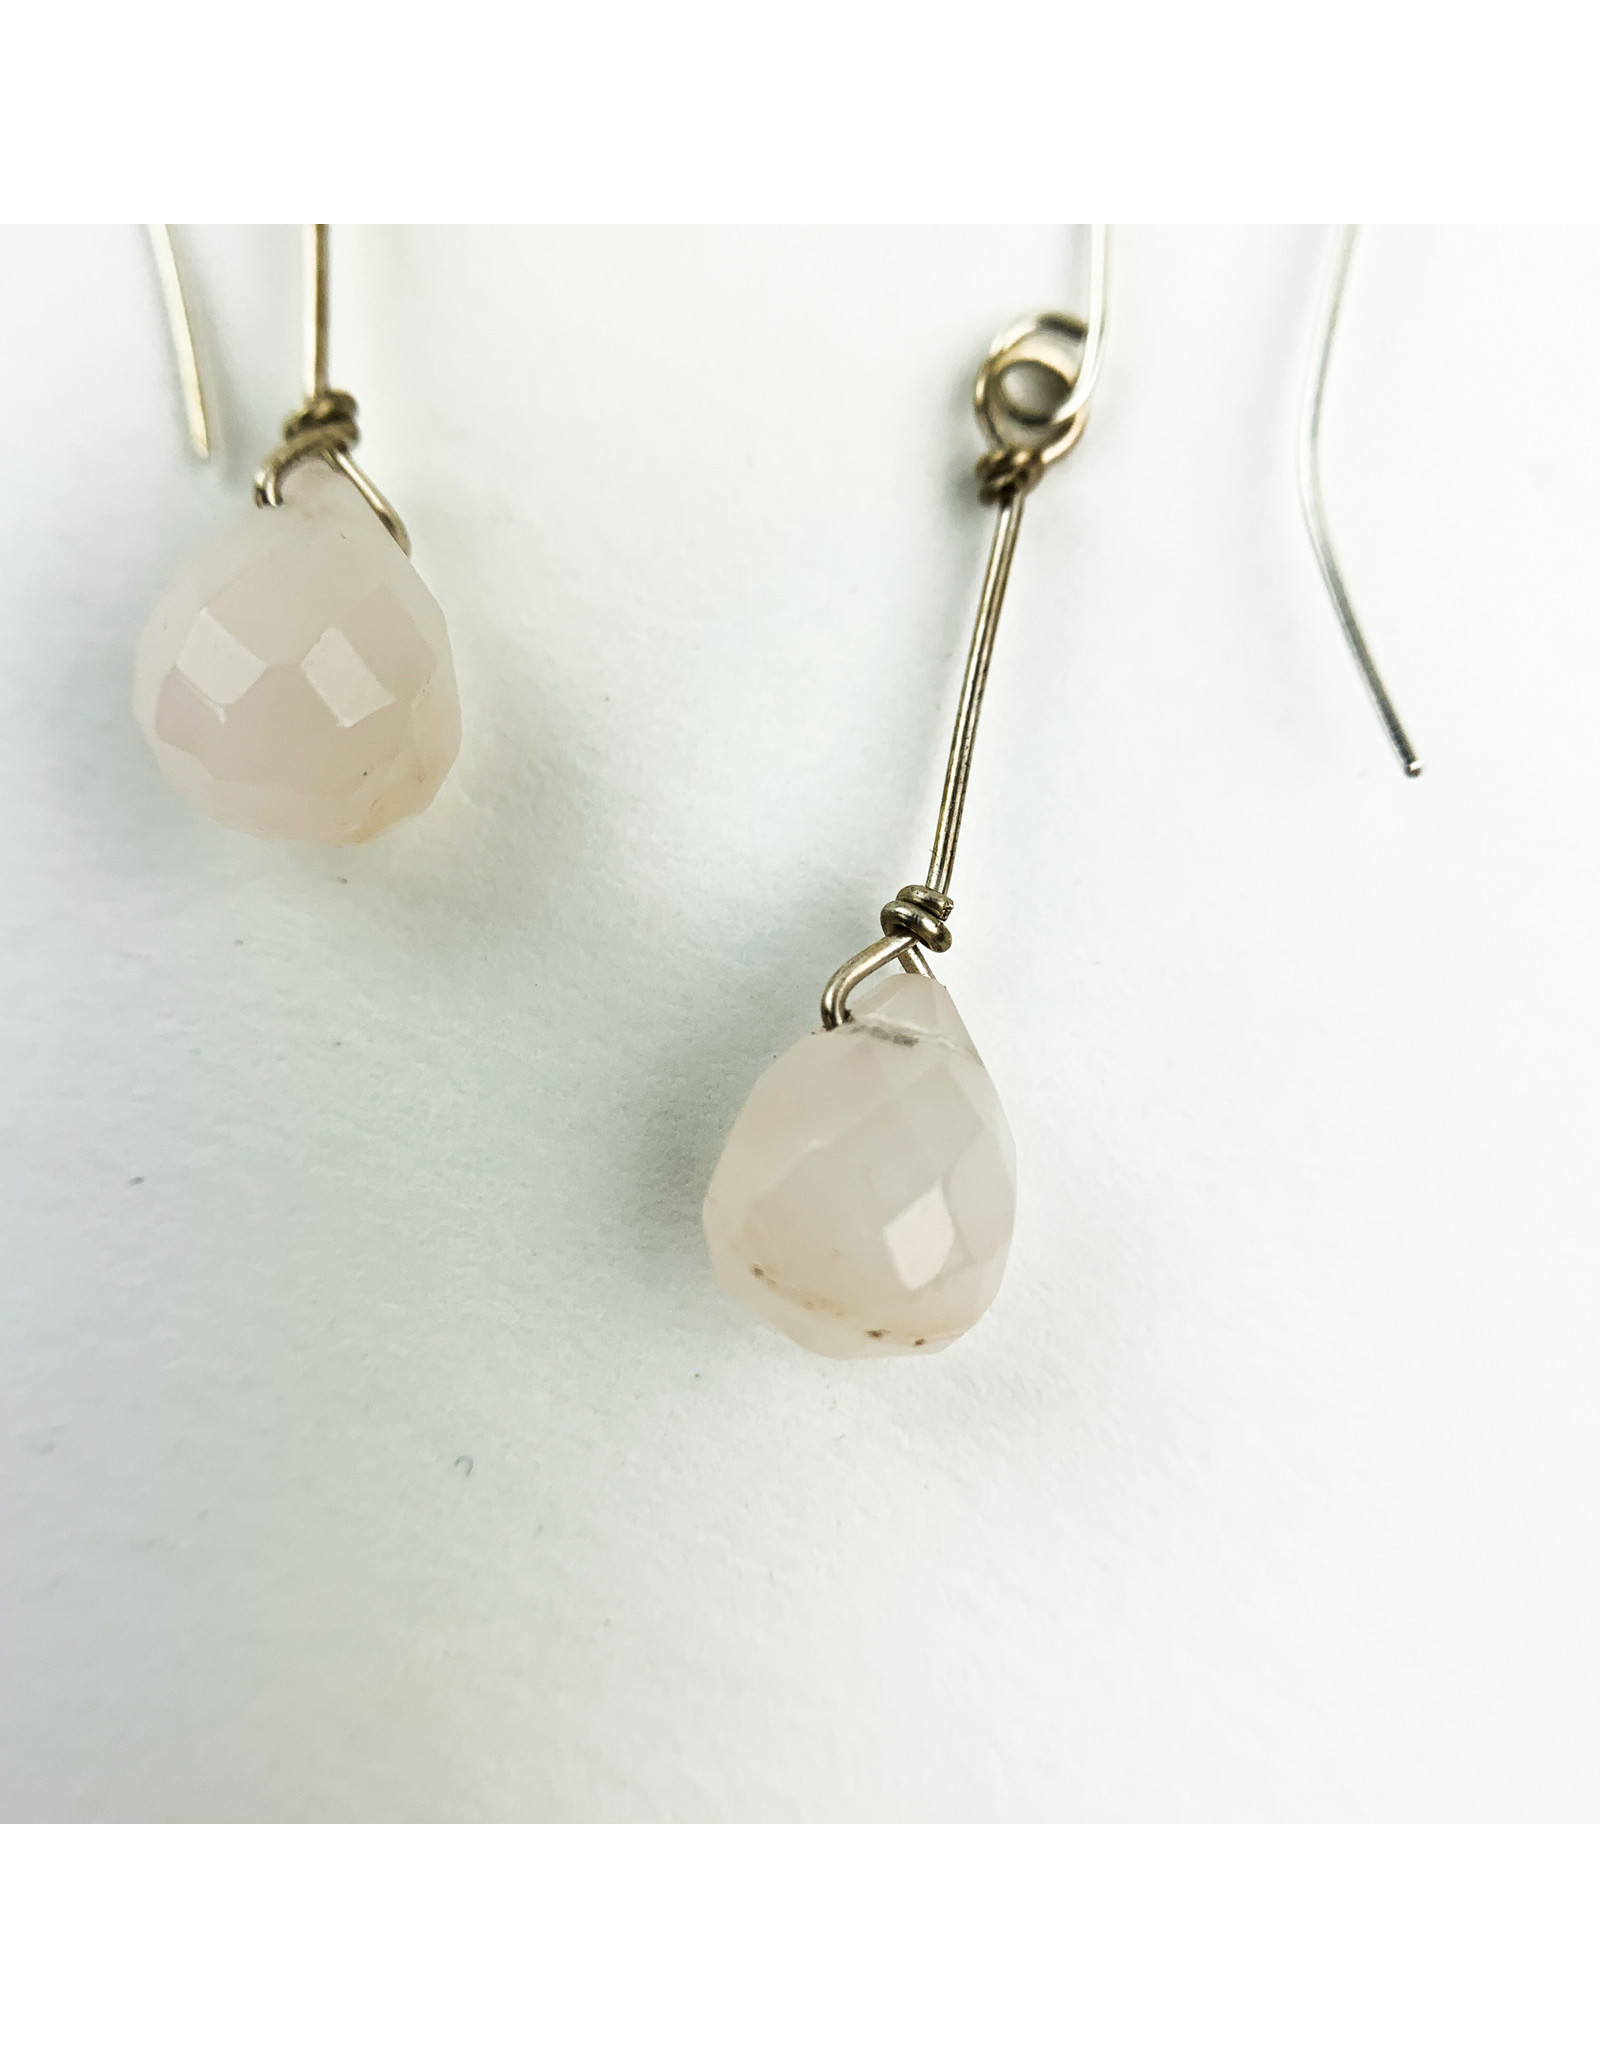 Nicole Collodoro Rose Quartz Earrings